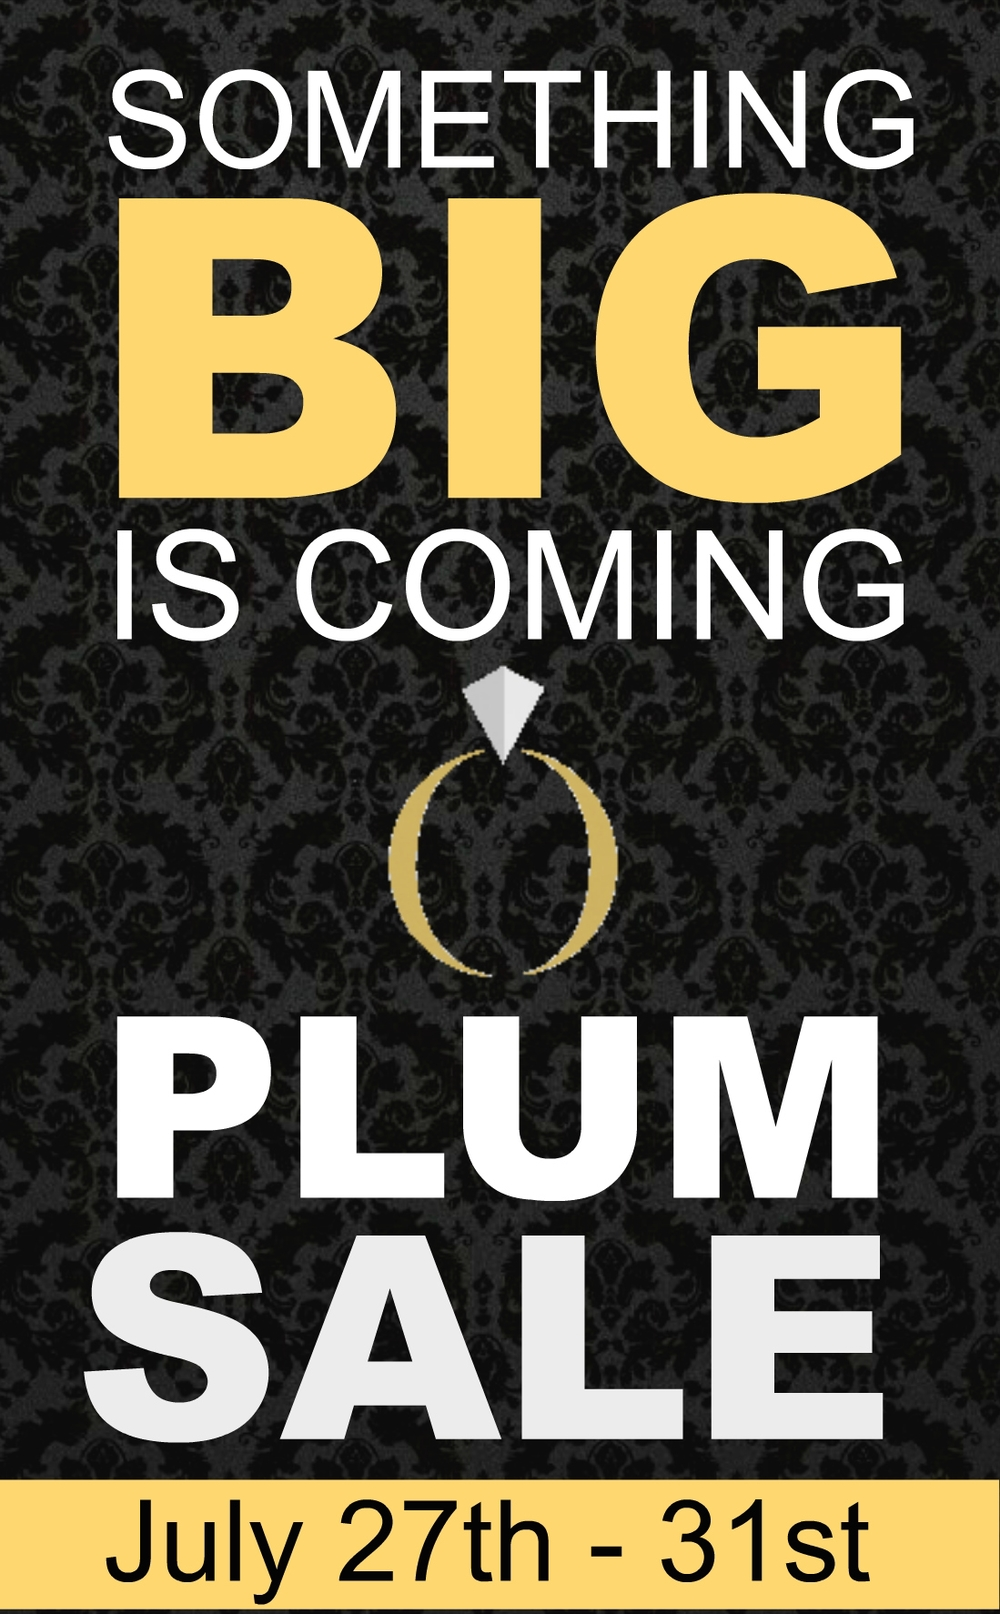 Big Plum Sale